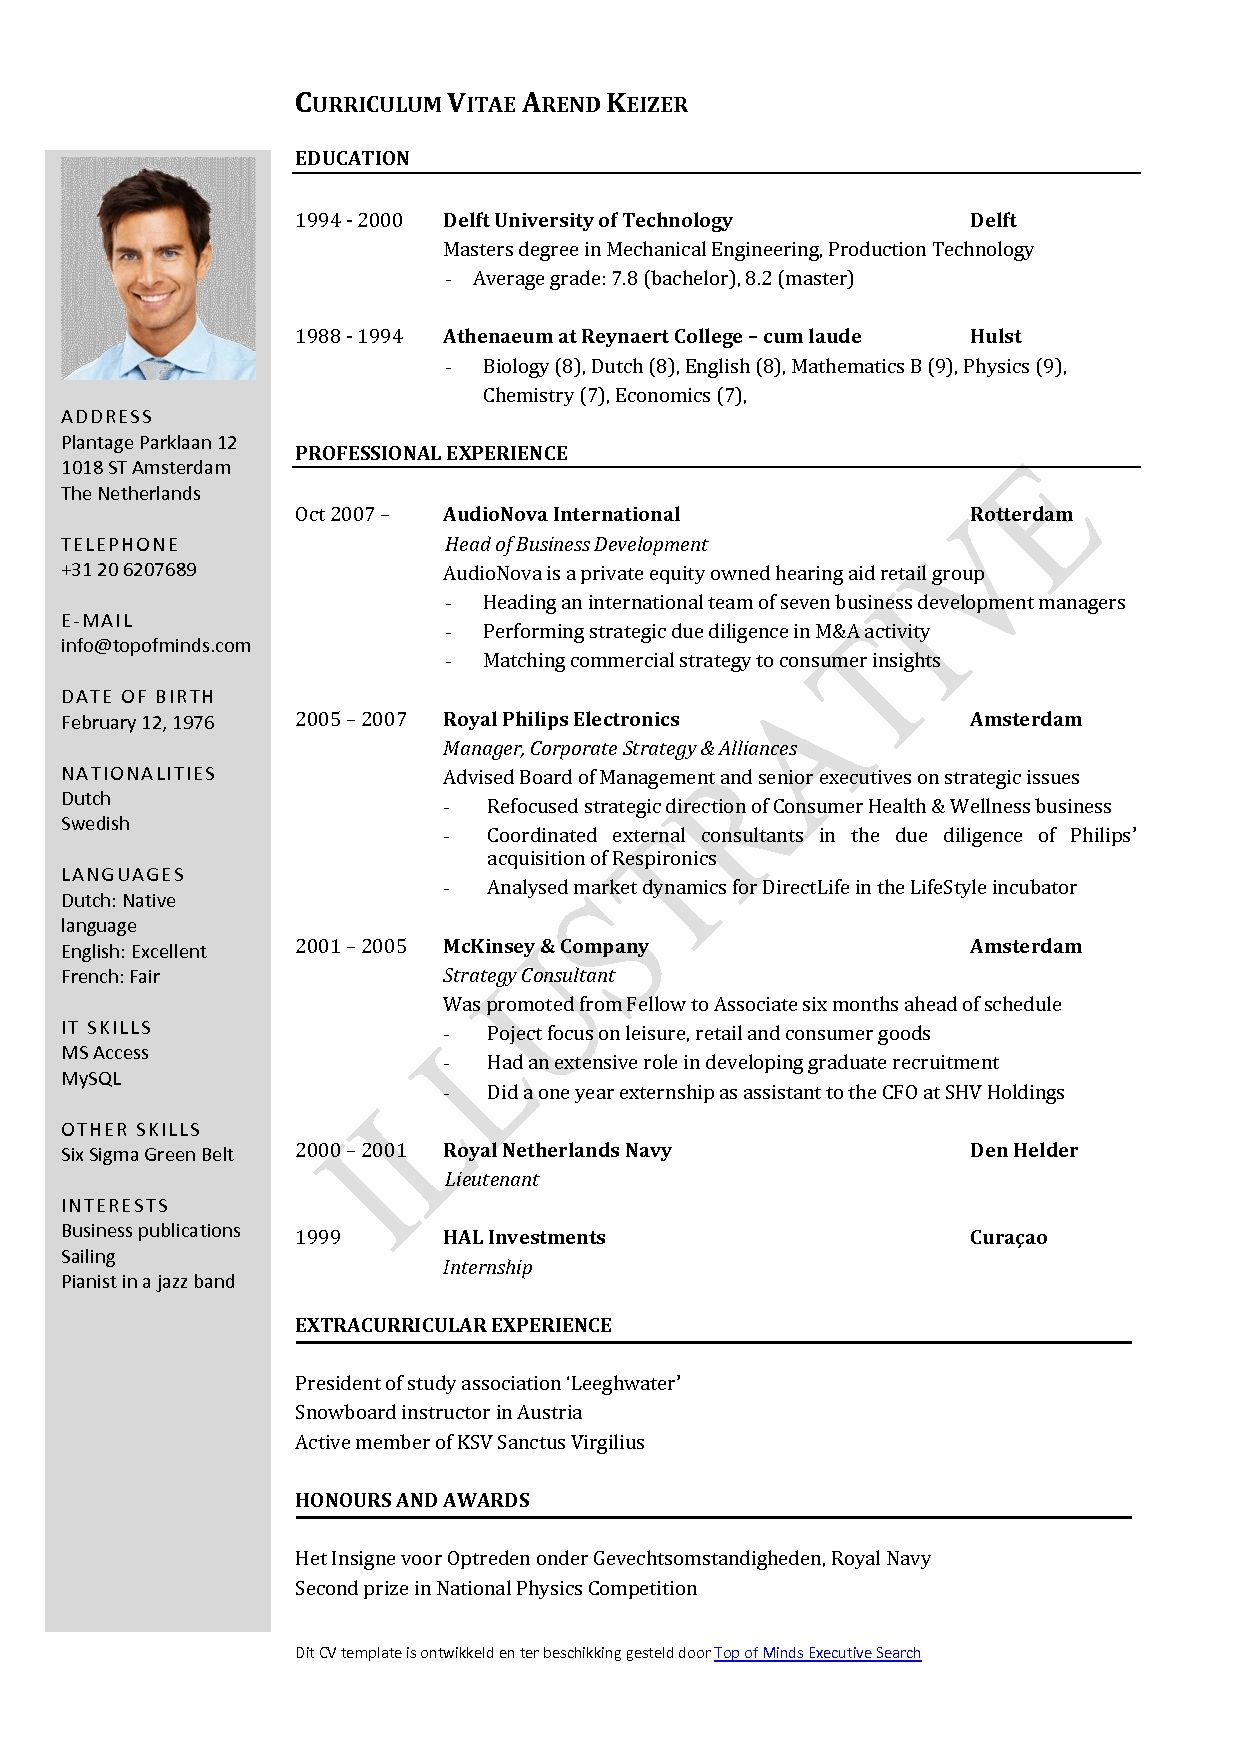 Open Office Resume Templates Damian Sanchez Damian5921 On Pinterest